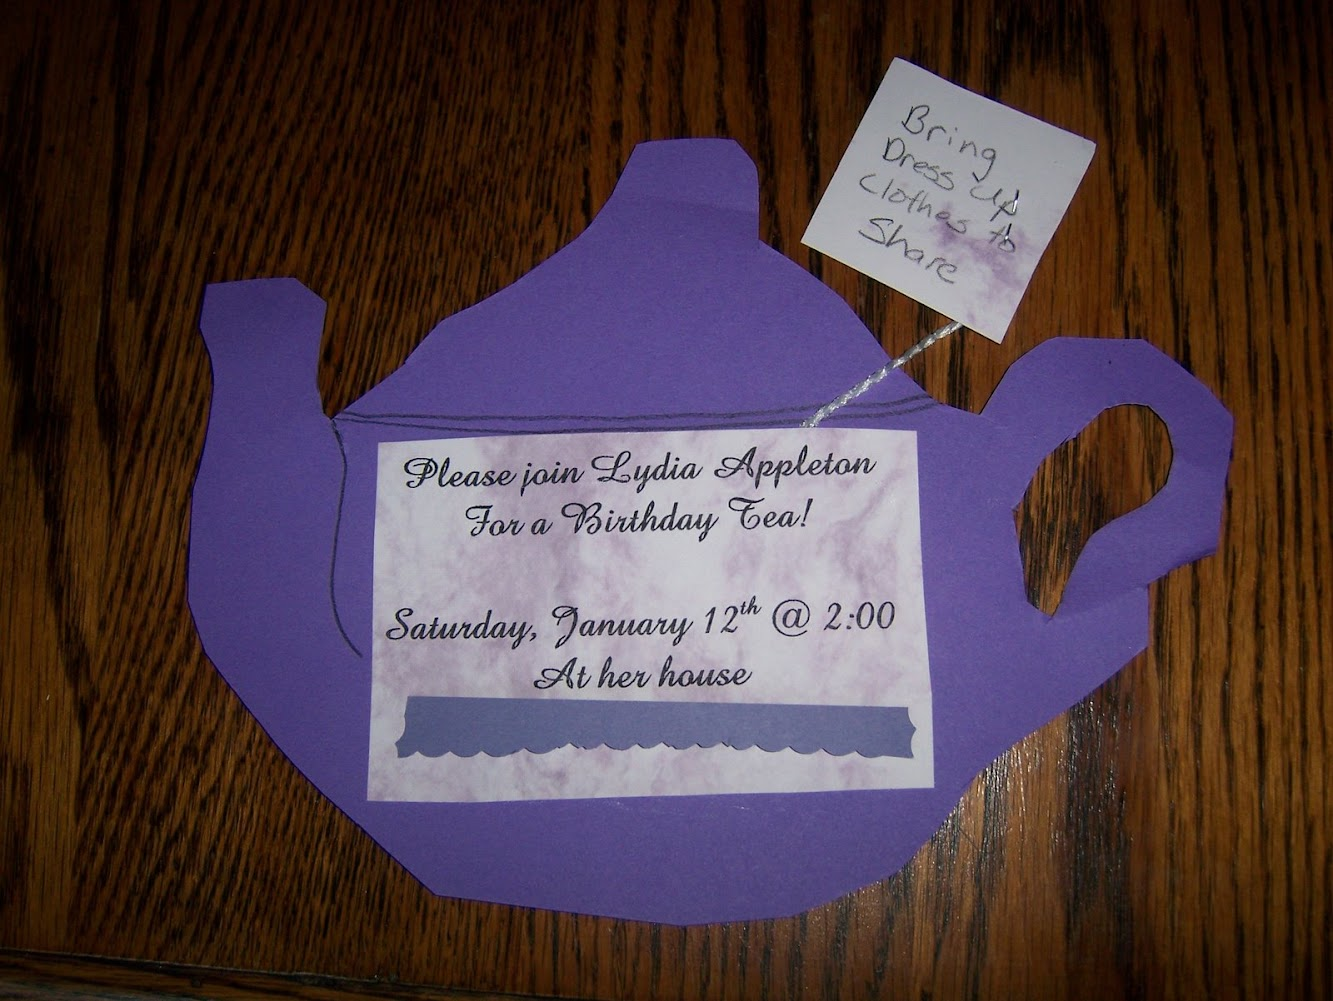 The Birthday Tea Party - Invitations